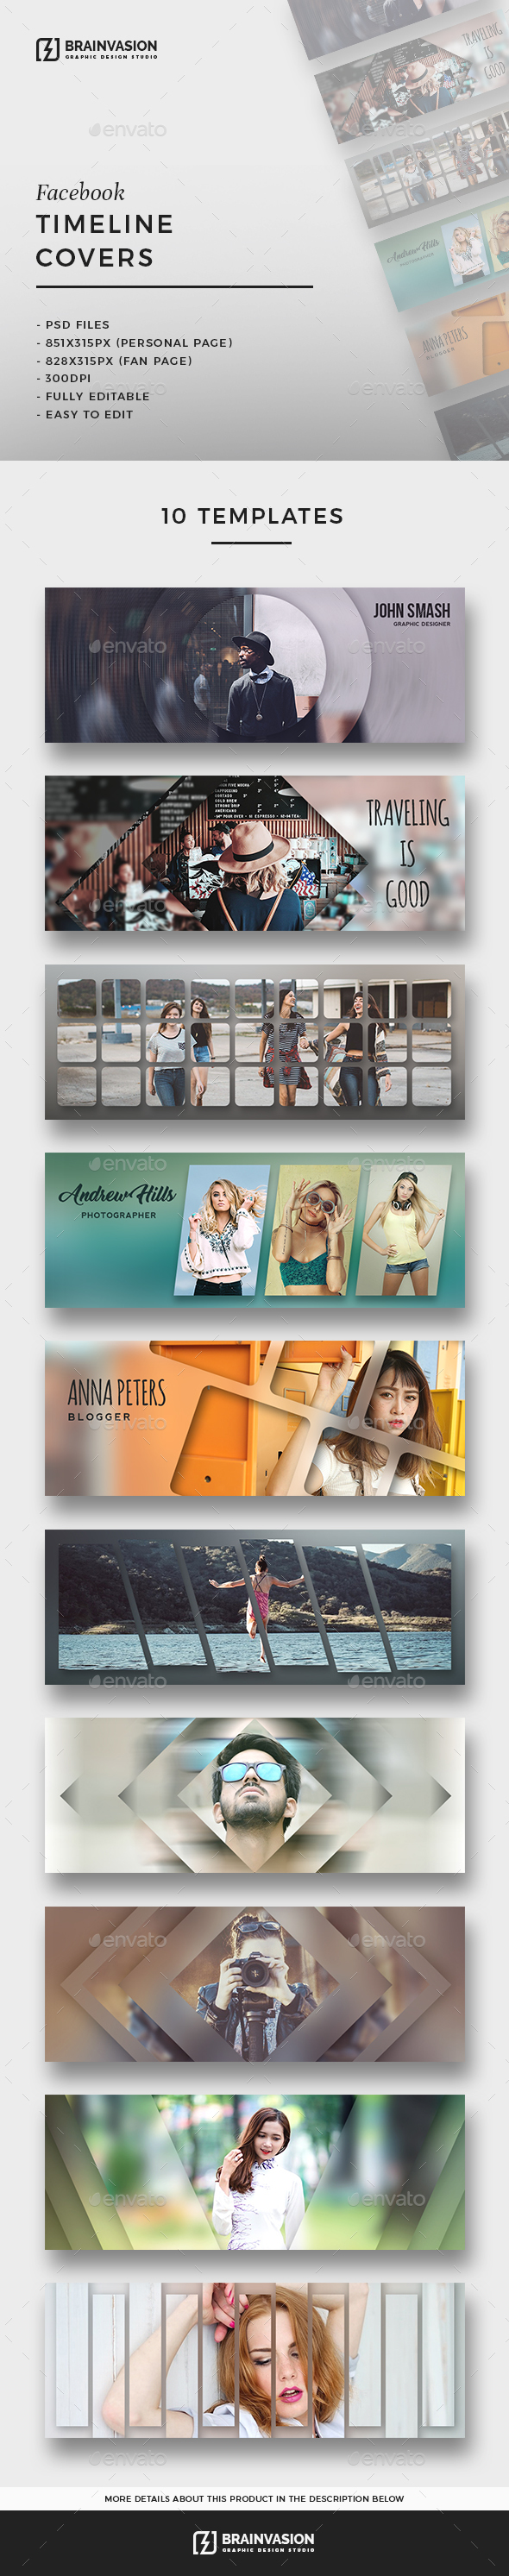 Creative Facebook Timeline Covers Bundle - Facebook Timeline Covers Social Media